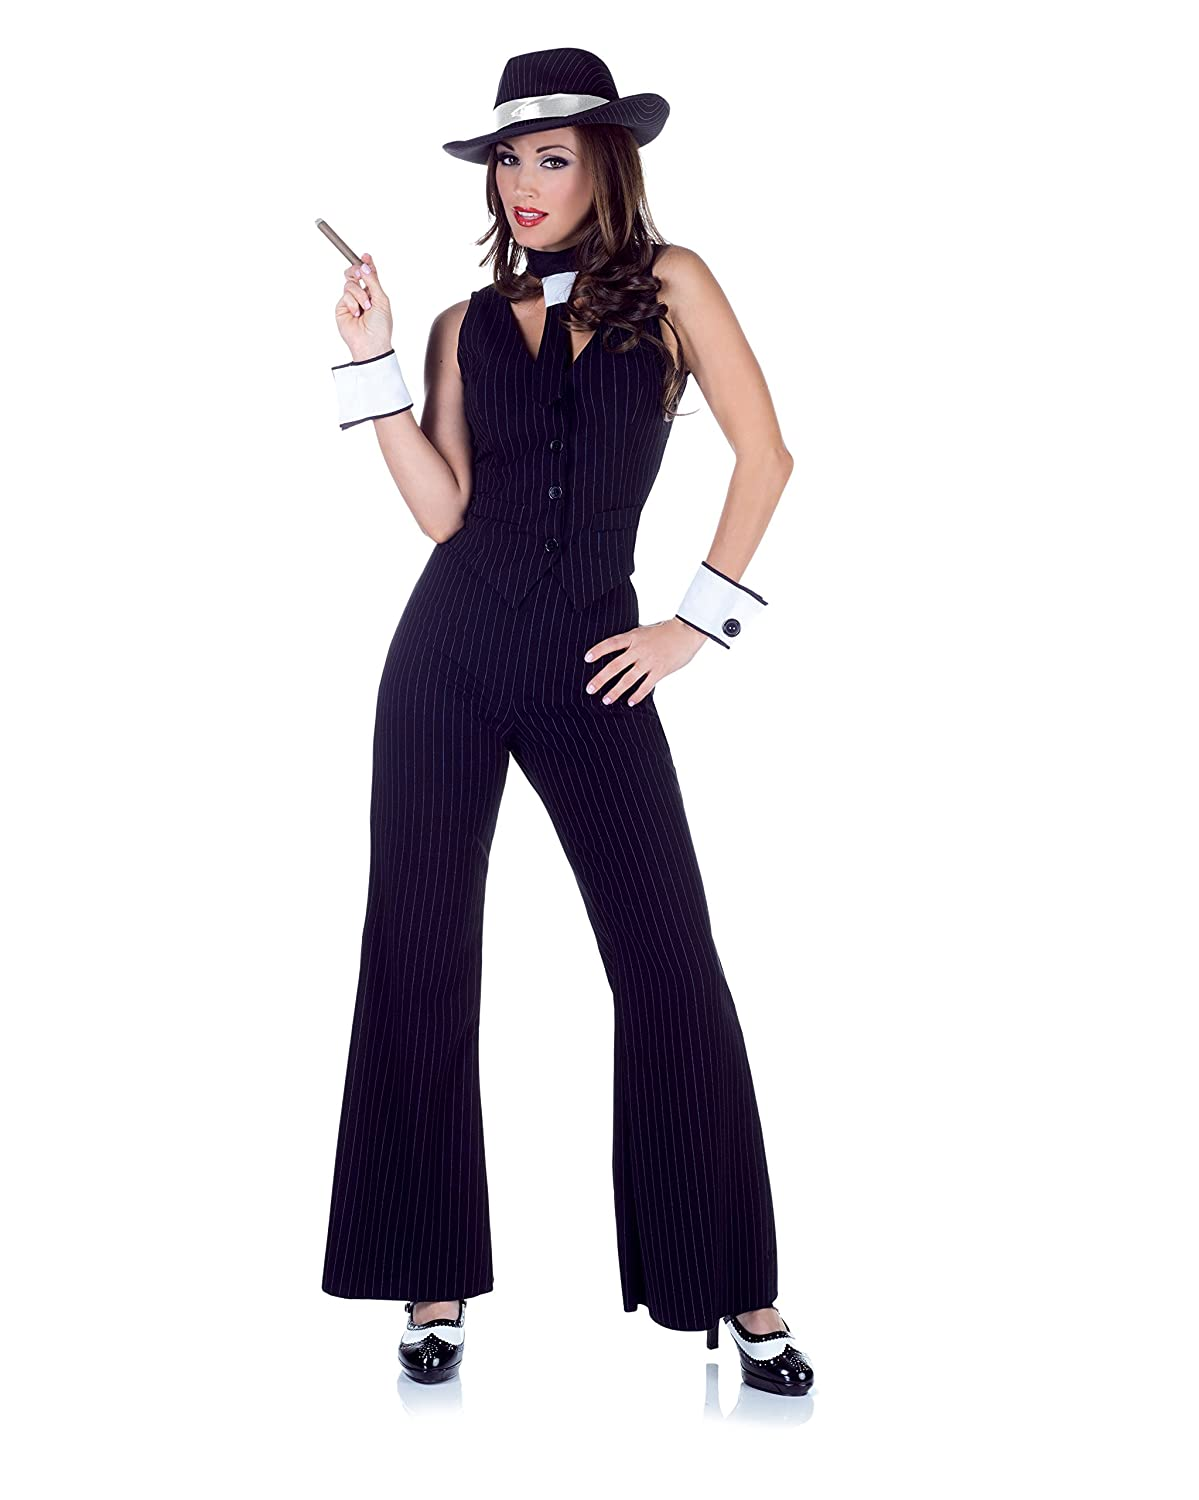 Swing Dance Shoes- Vintage, Lindy Hop, Tap, Ballroom Underwraps Costumes Womens Gangster Costume - Bugsy $53.52 AT vintagedancer.com